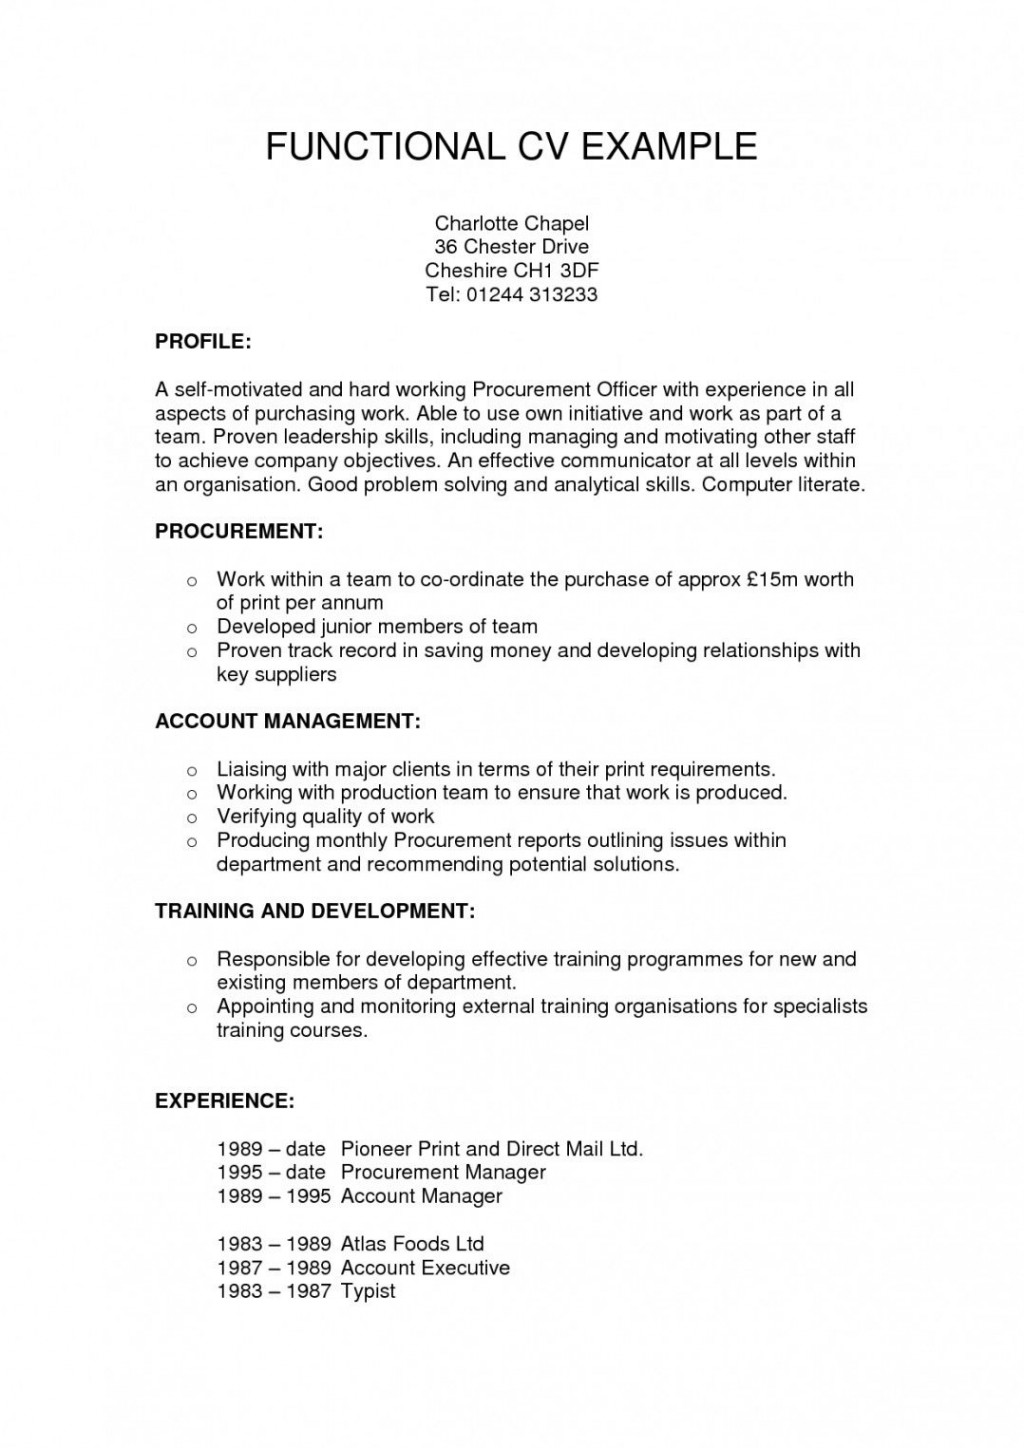 005 Incredible Functional Resume Template Free High Definition Large